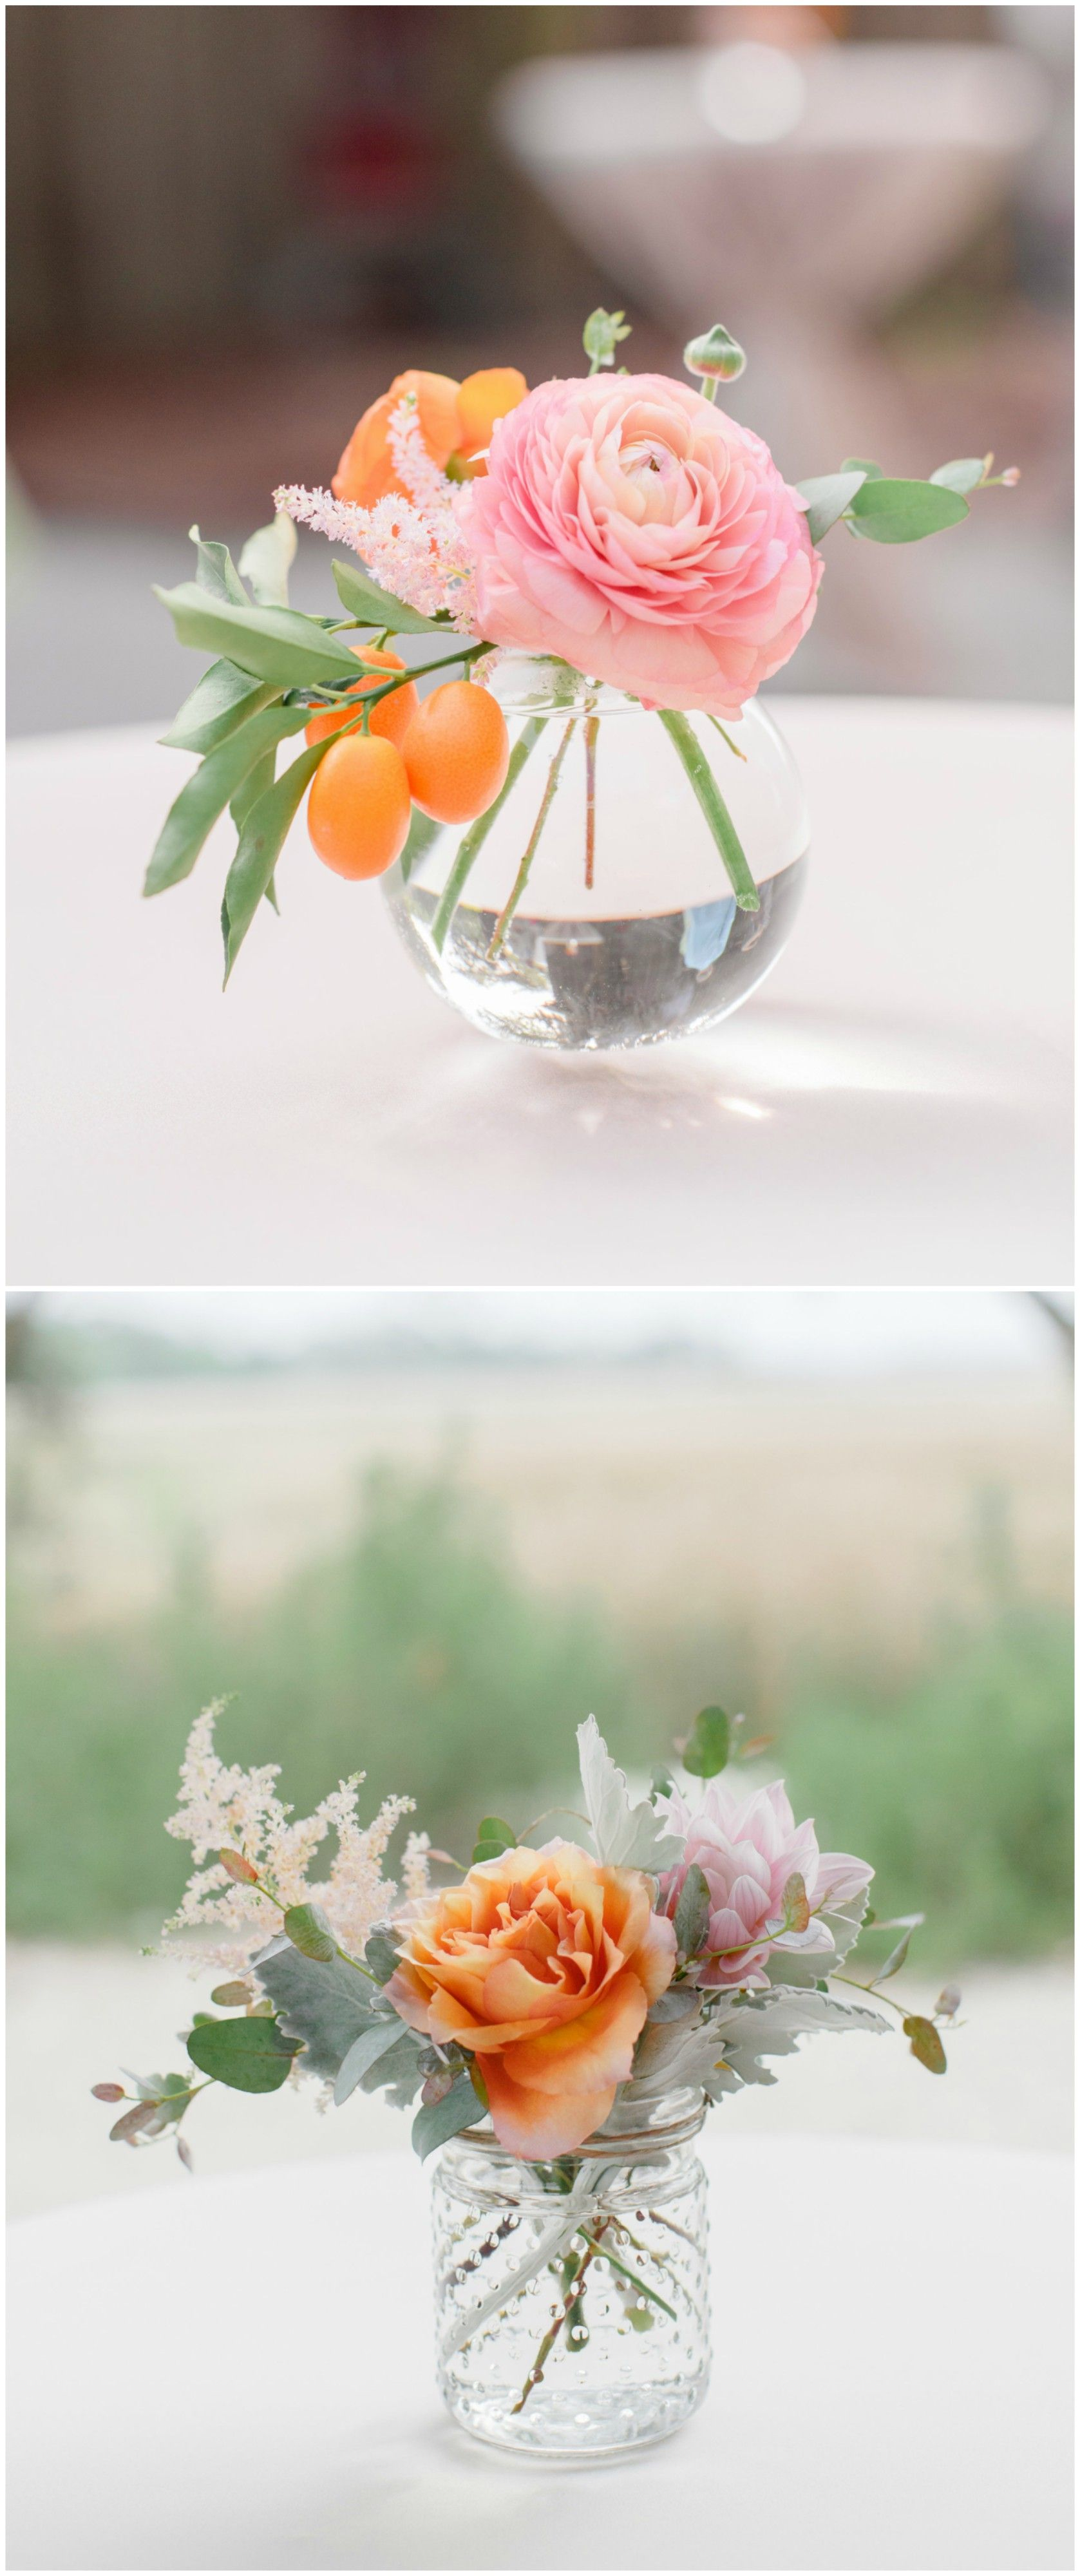 The Smarter Way to Wed | Simple wedding reception, Small glass vases ...